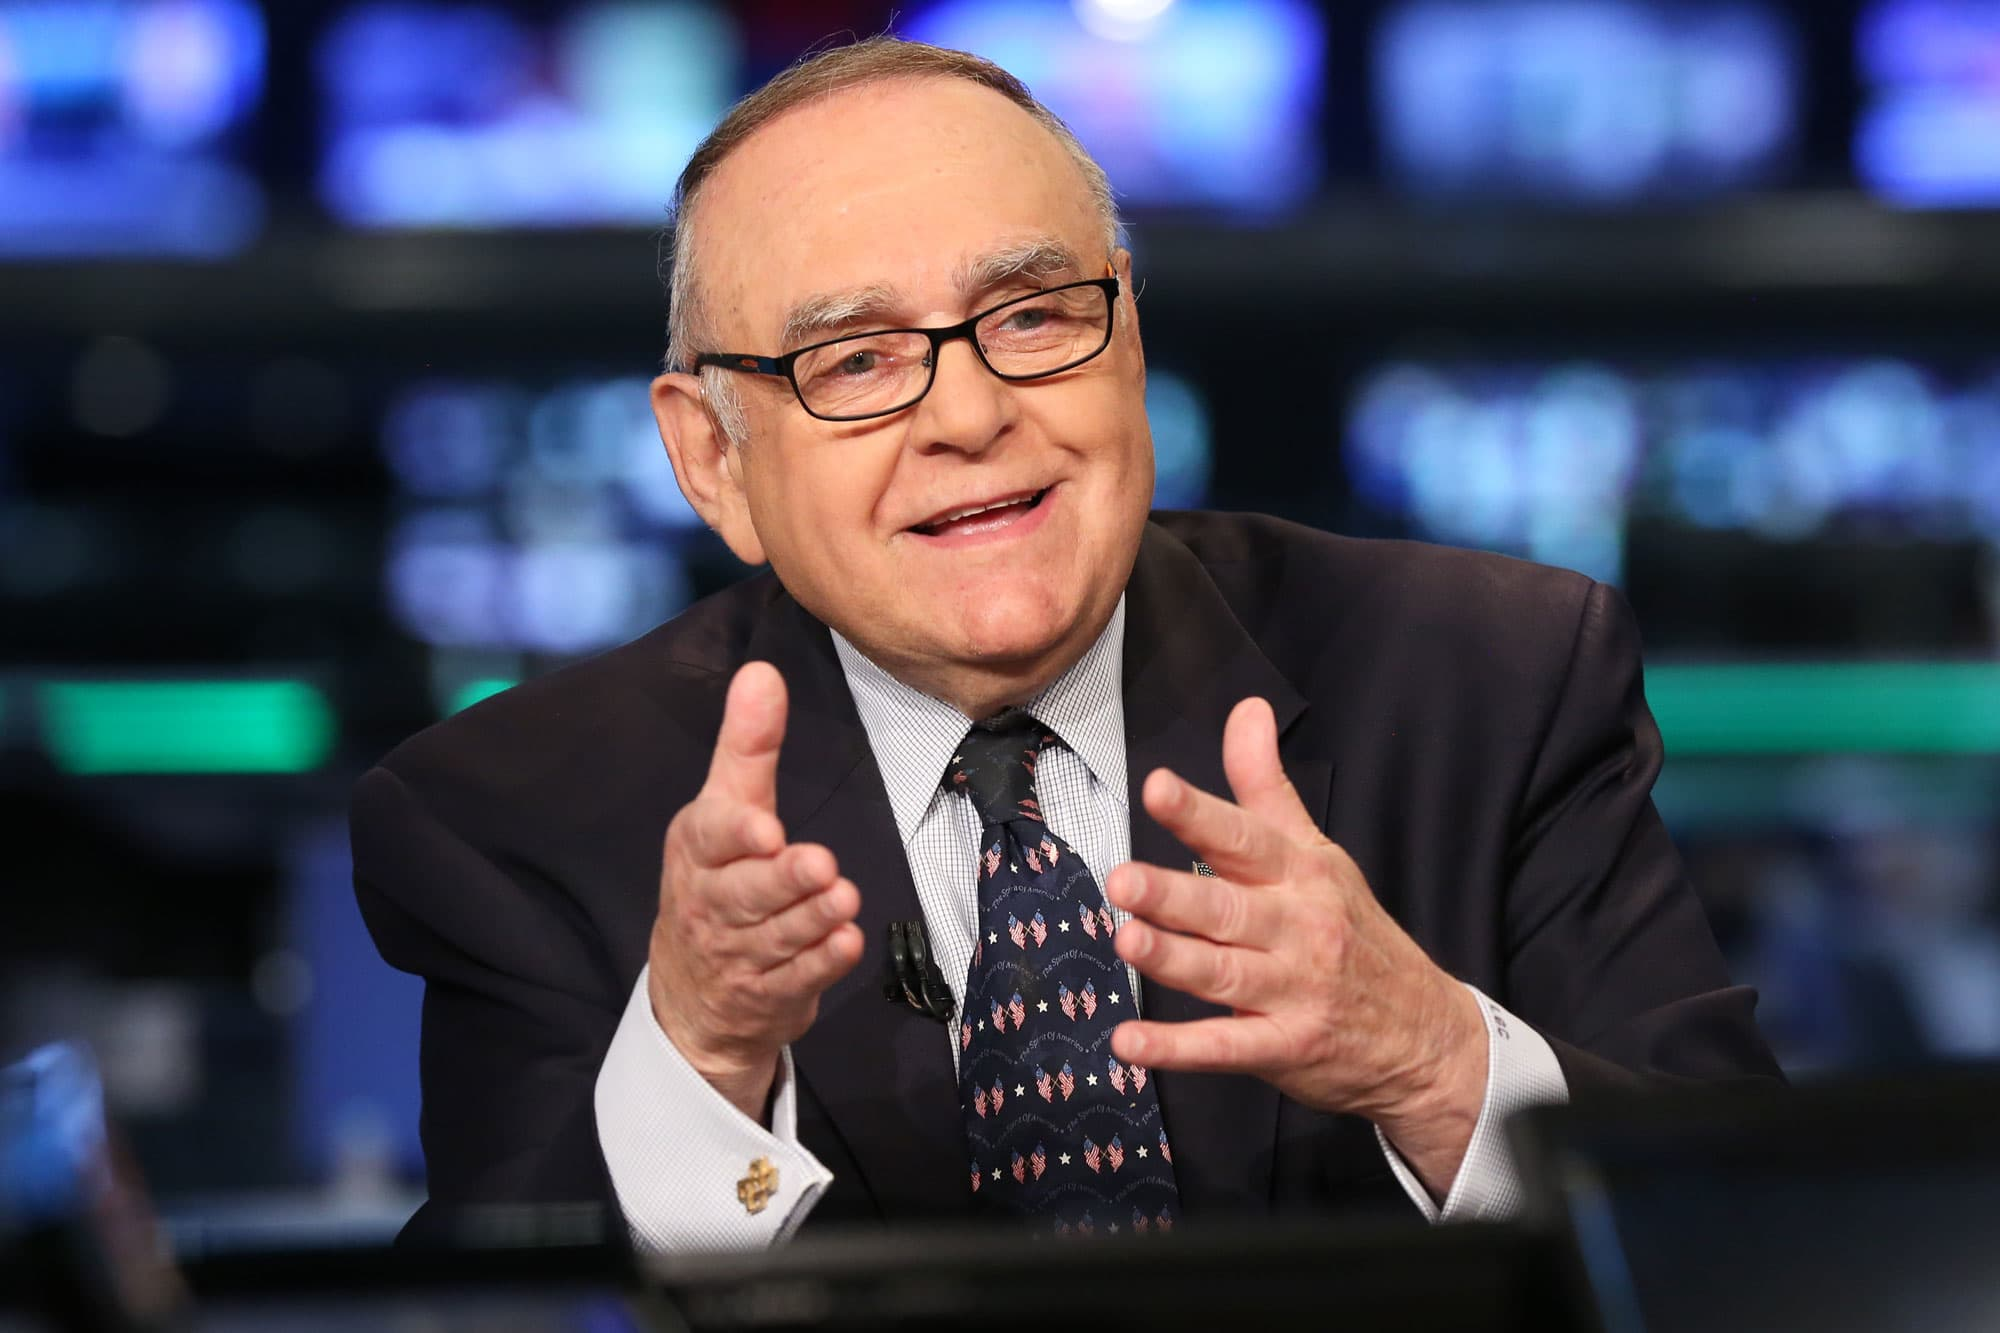 Leon Cooperman sees 'euphoria' in elements of market, skeptical long run